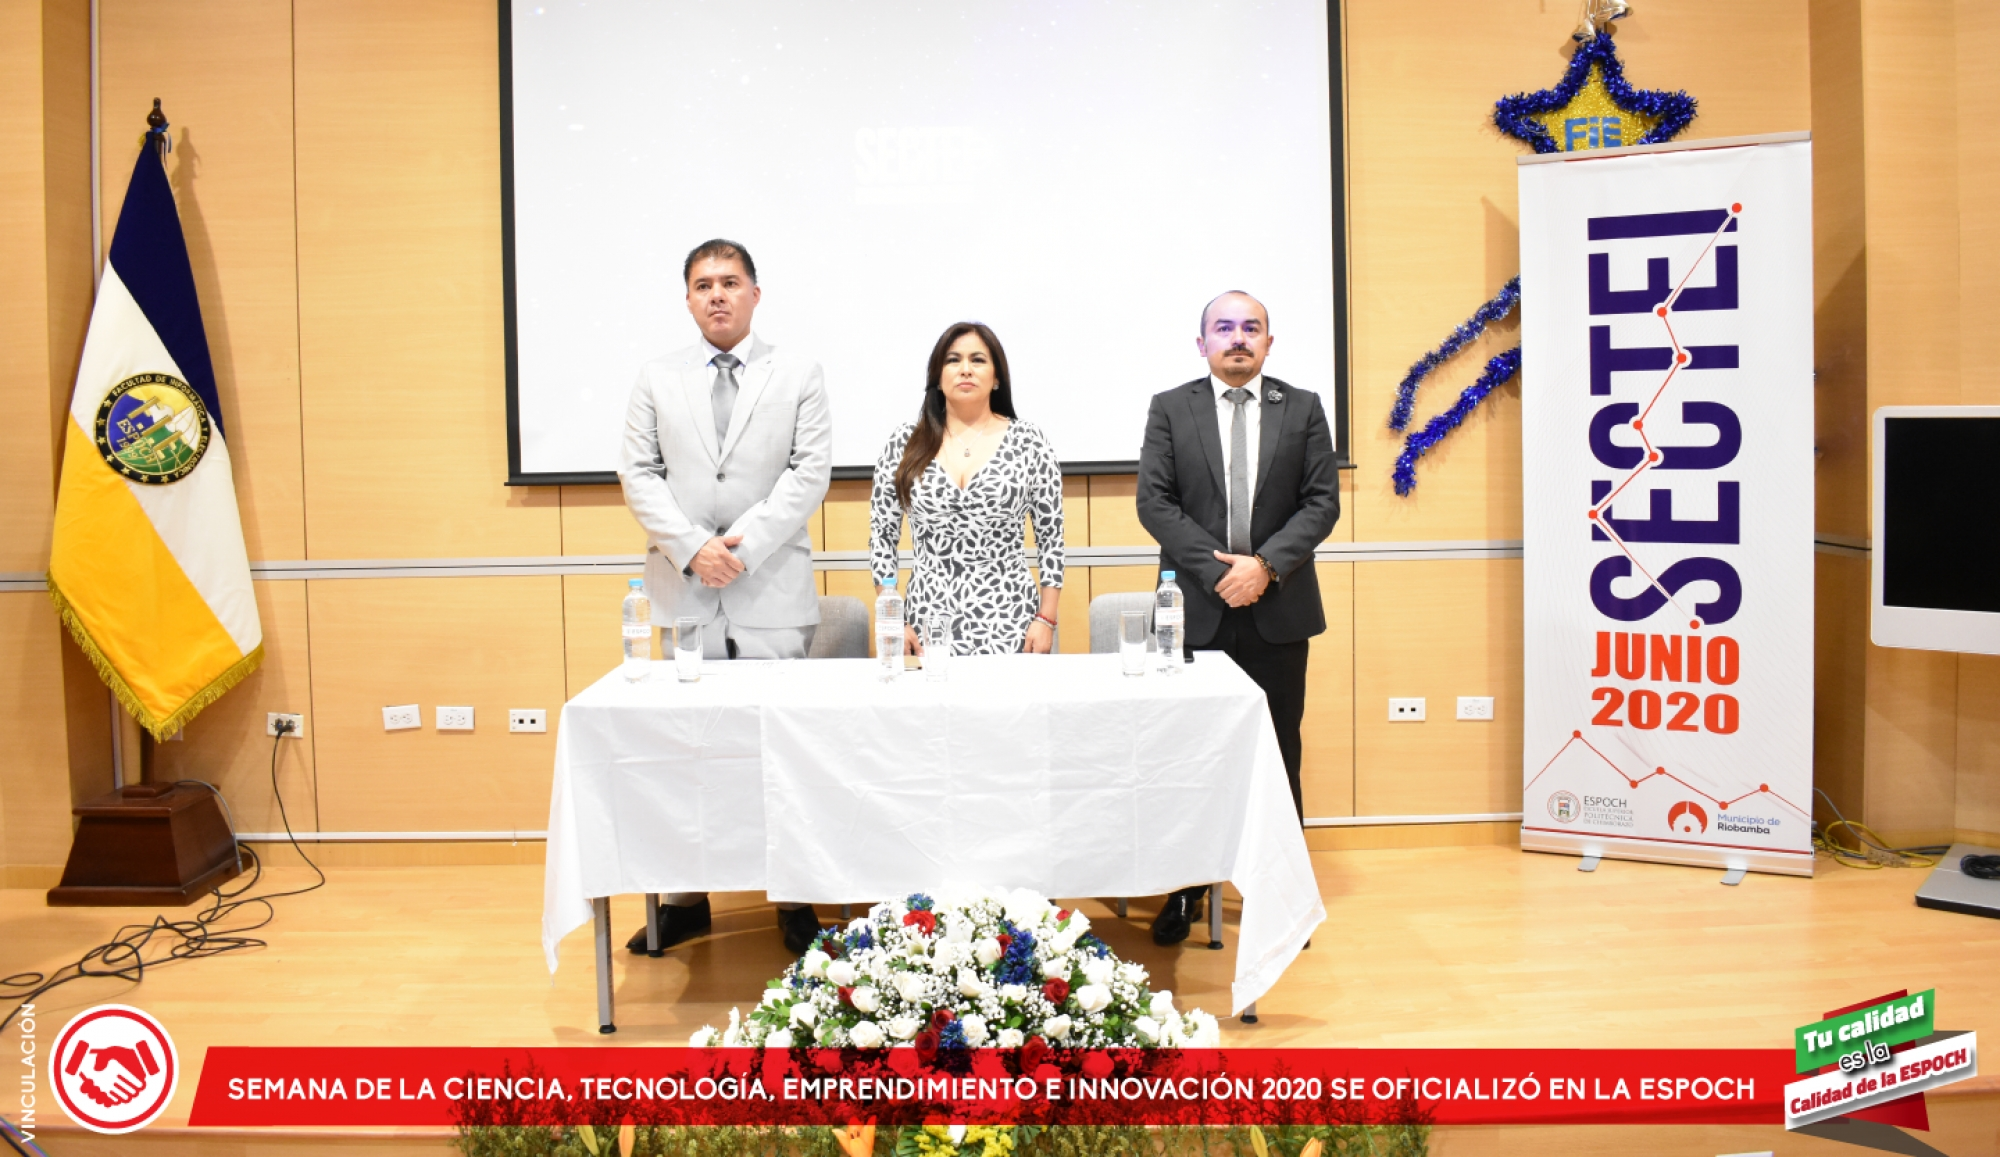 SCIENCE WEEK, TECHNOLOGY, BUSINESS AND INNOVATION 2020 WAS OFFICIALIZED IN THE ESPOCH